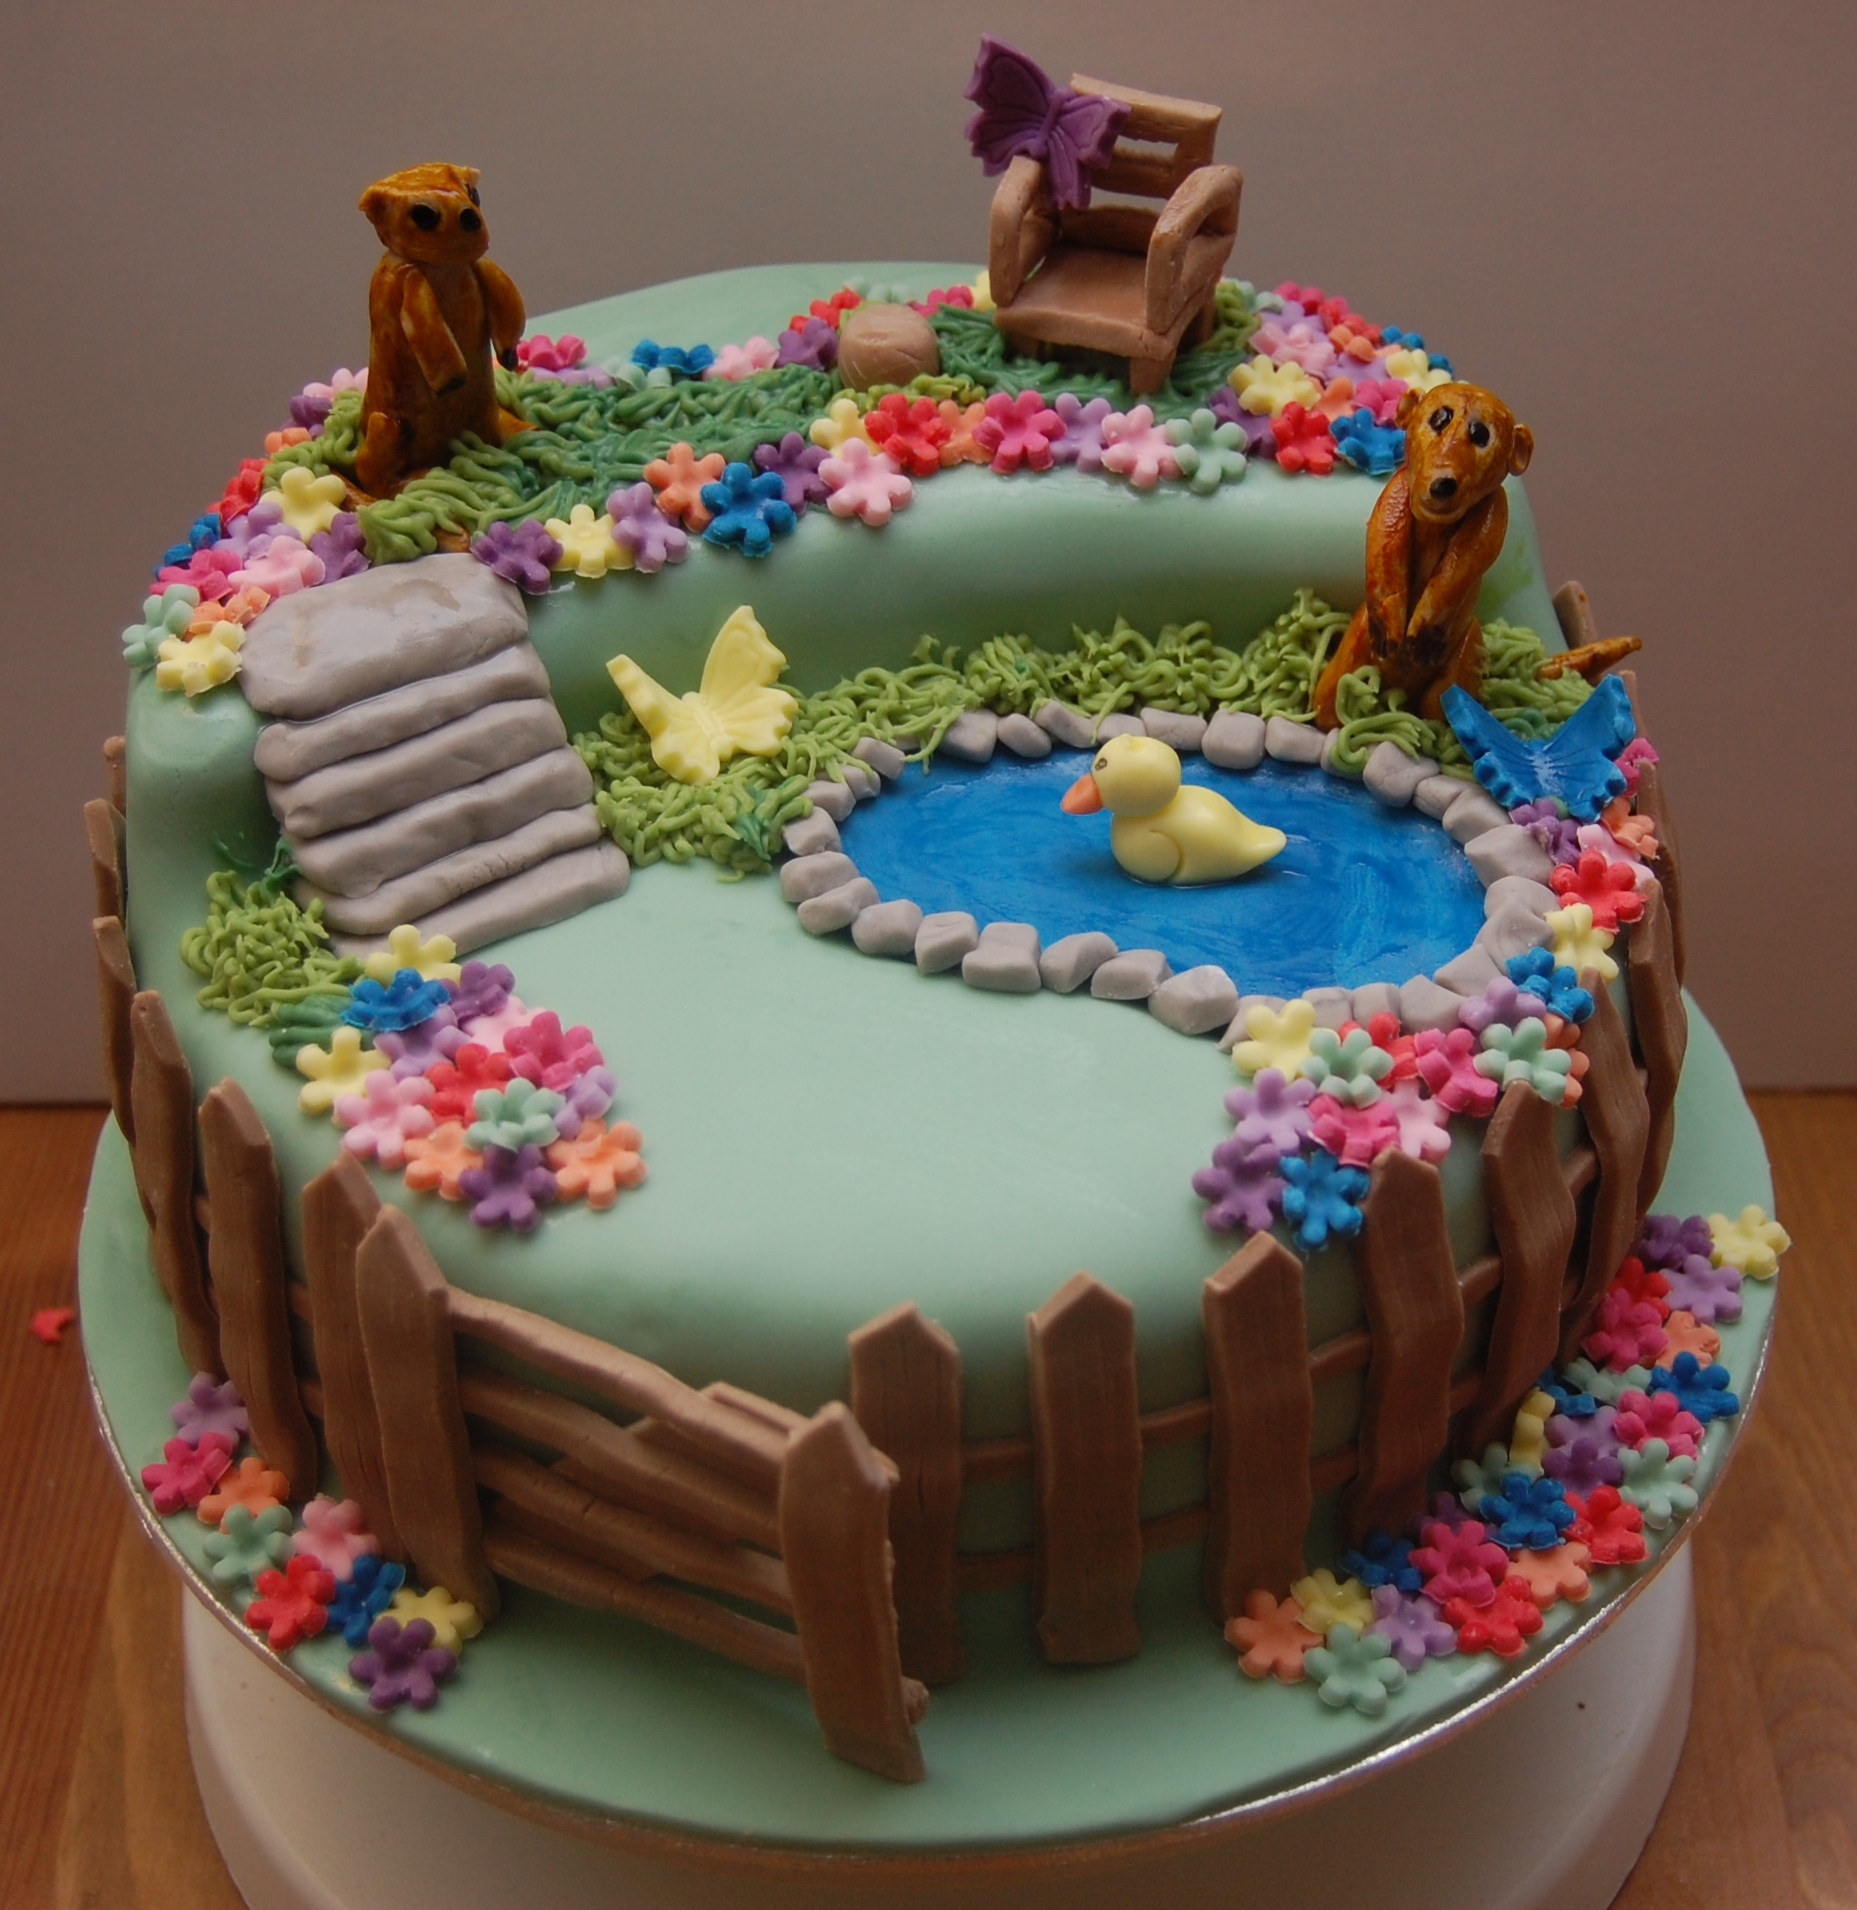 Meerkat Garden Scene Birthday Cake. Hours of Fun